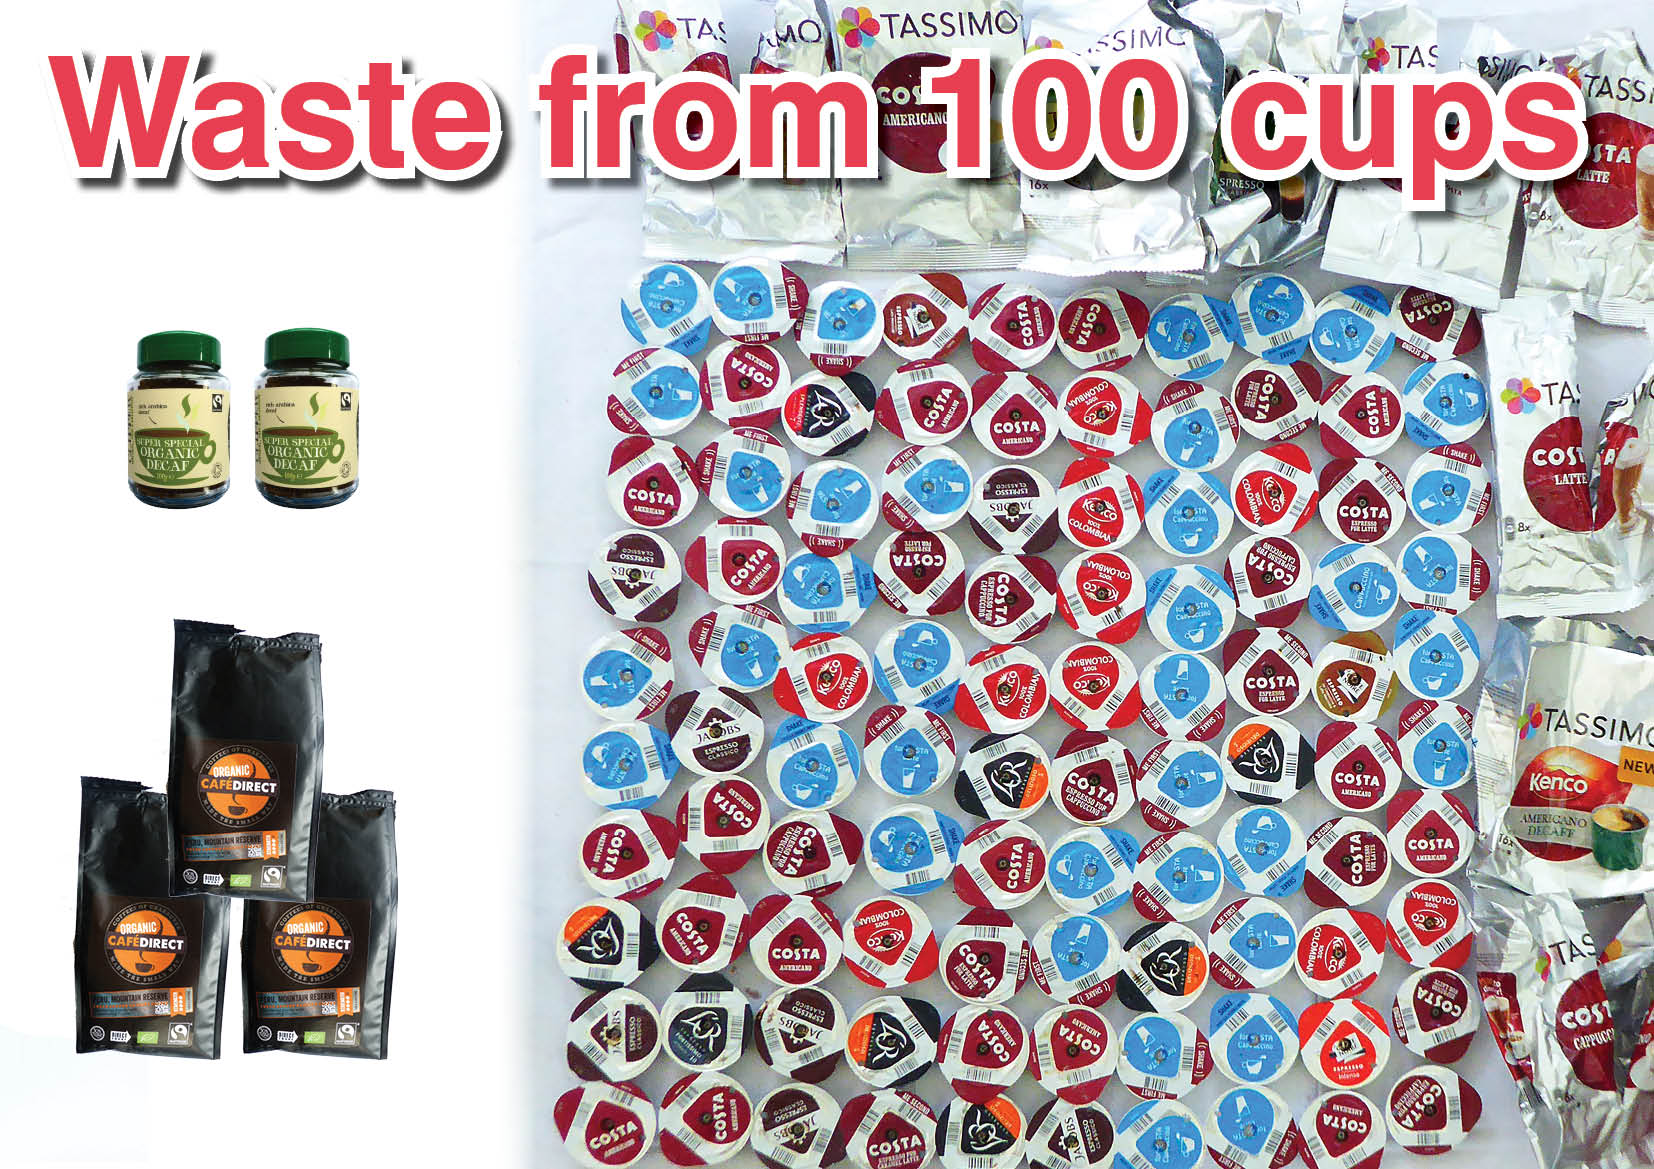 waste from 100 cups of coffee equivalent